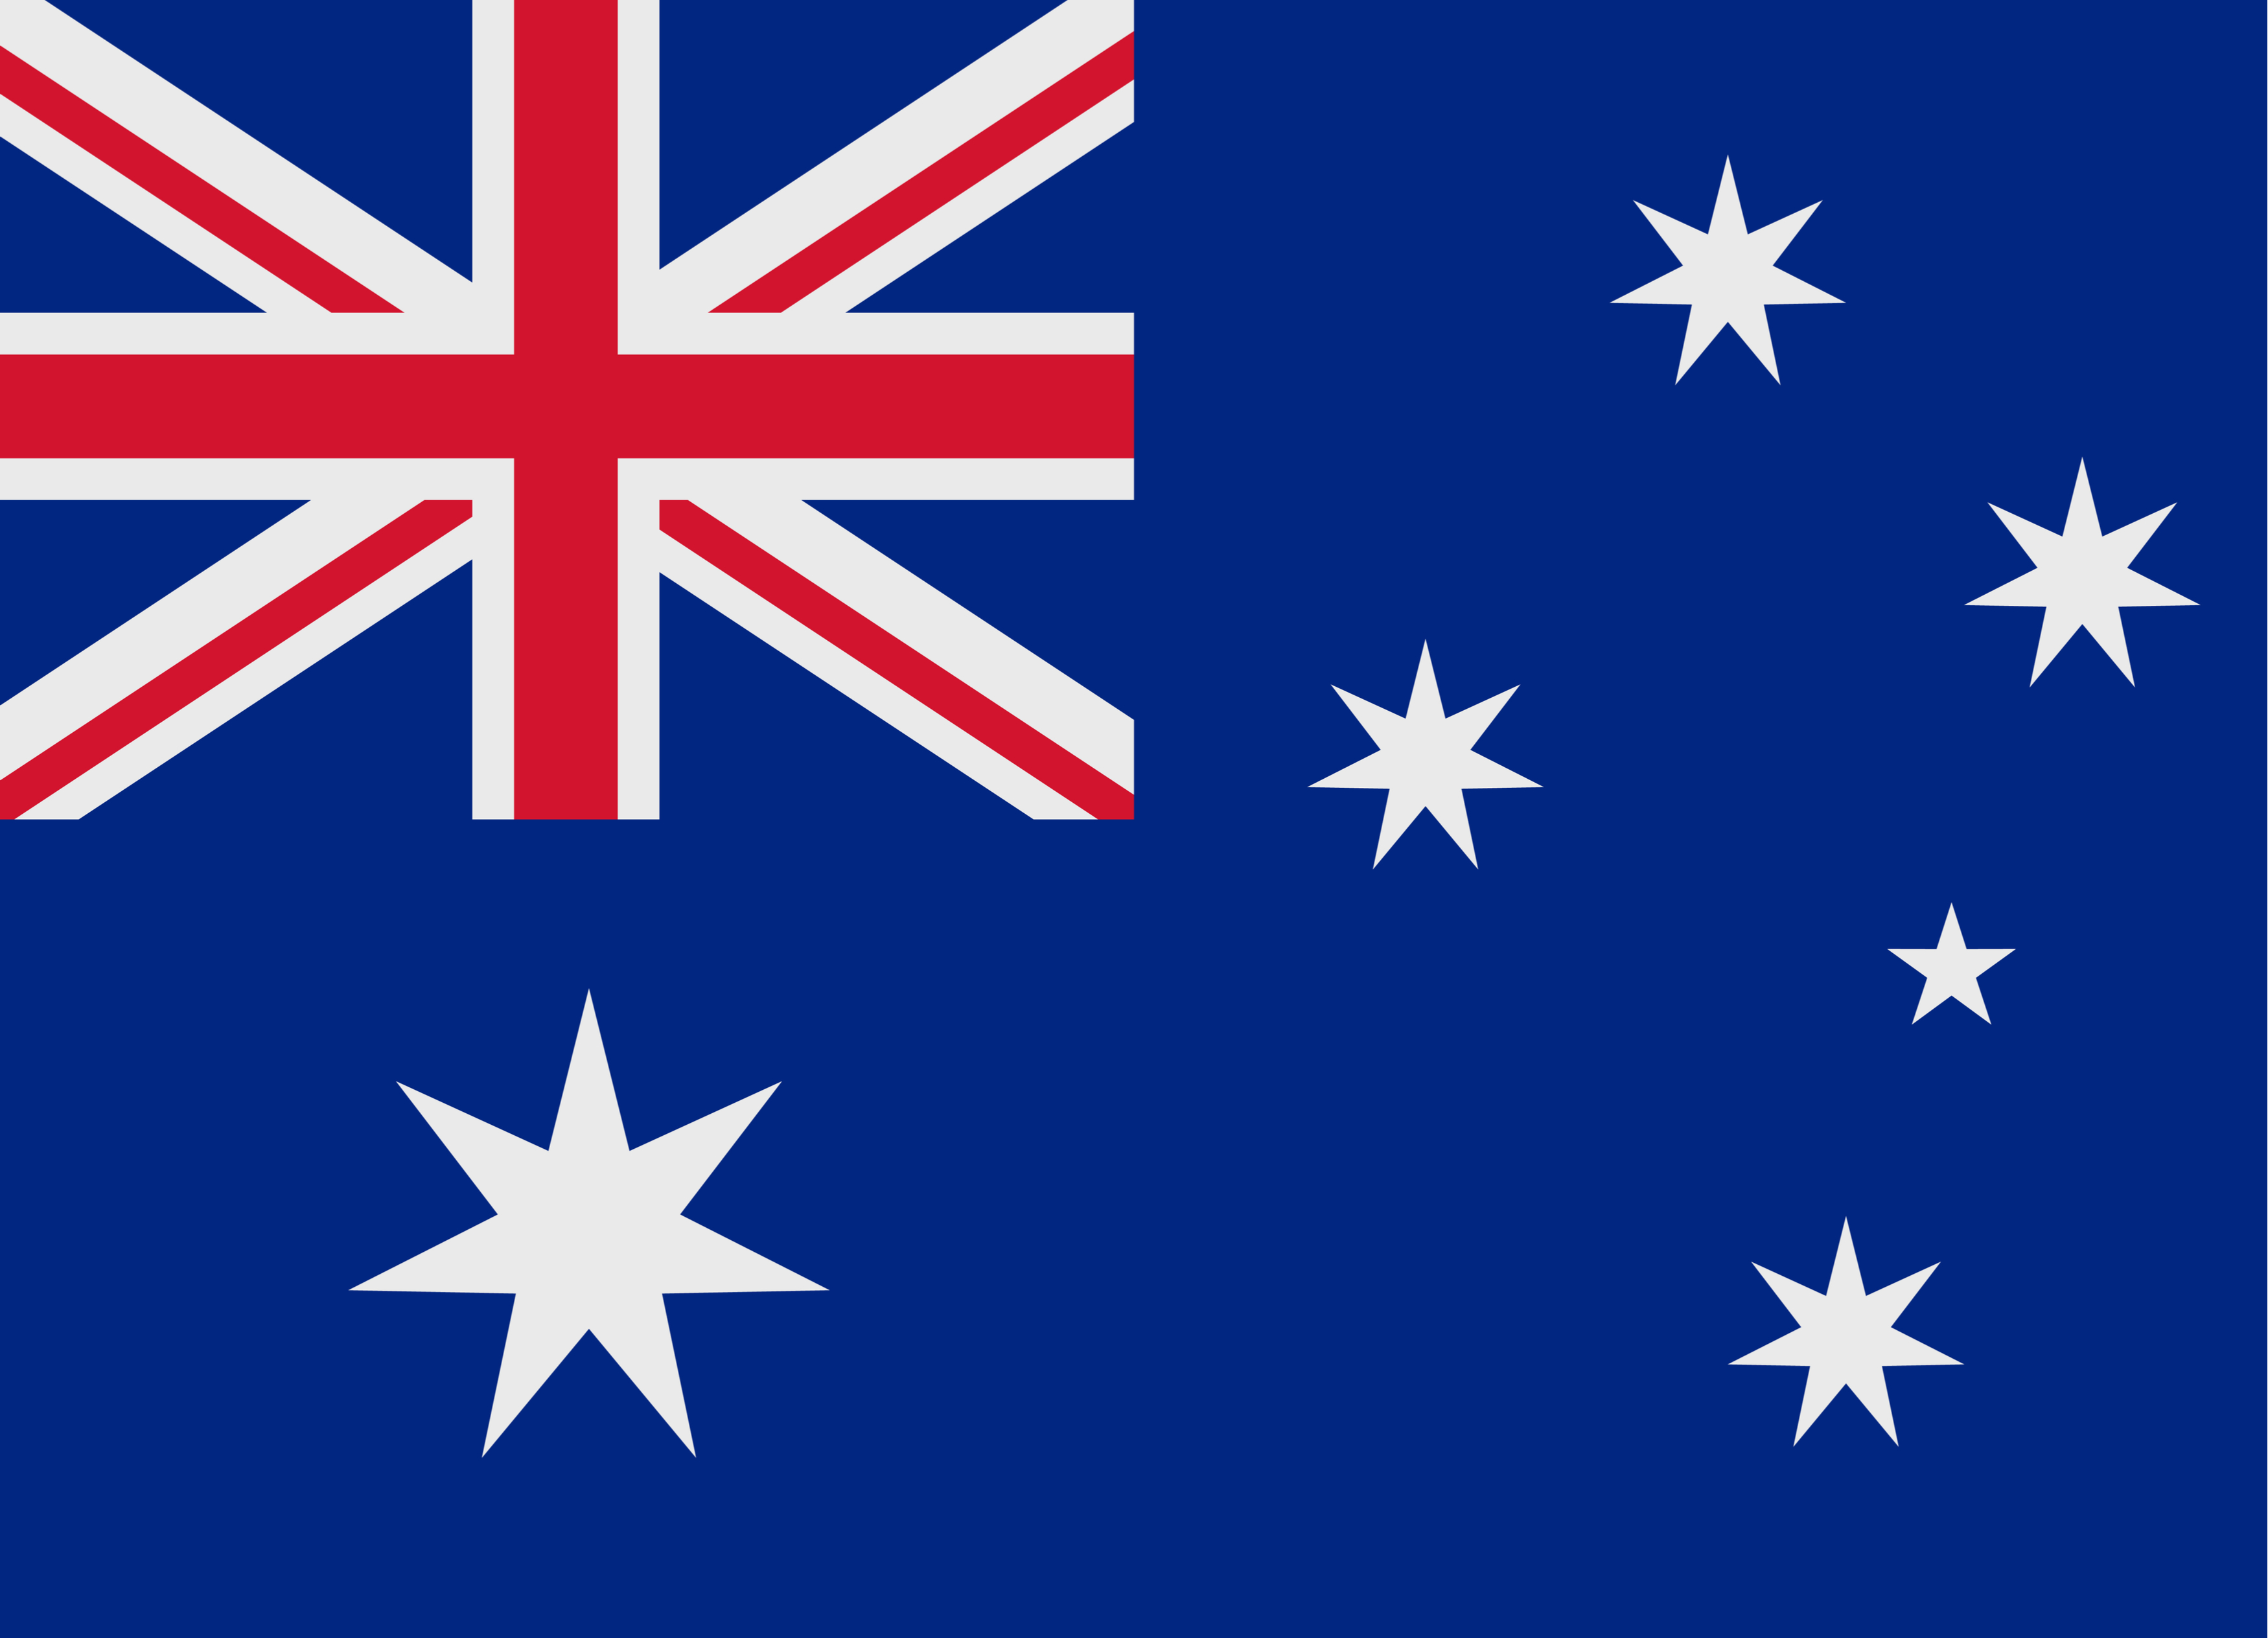 TheThe Australian National Flag consists of a dark blue field and features three primary components namely the Commonwealth Star, the Southern Cross, and the Union Jack.